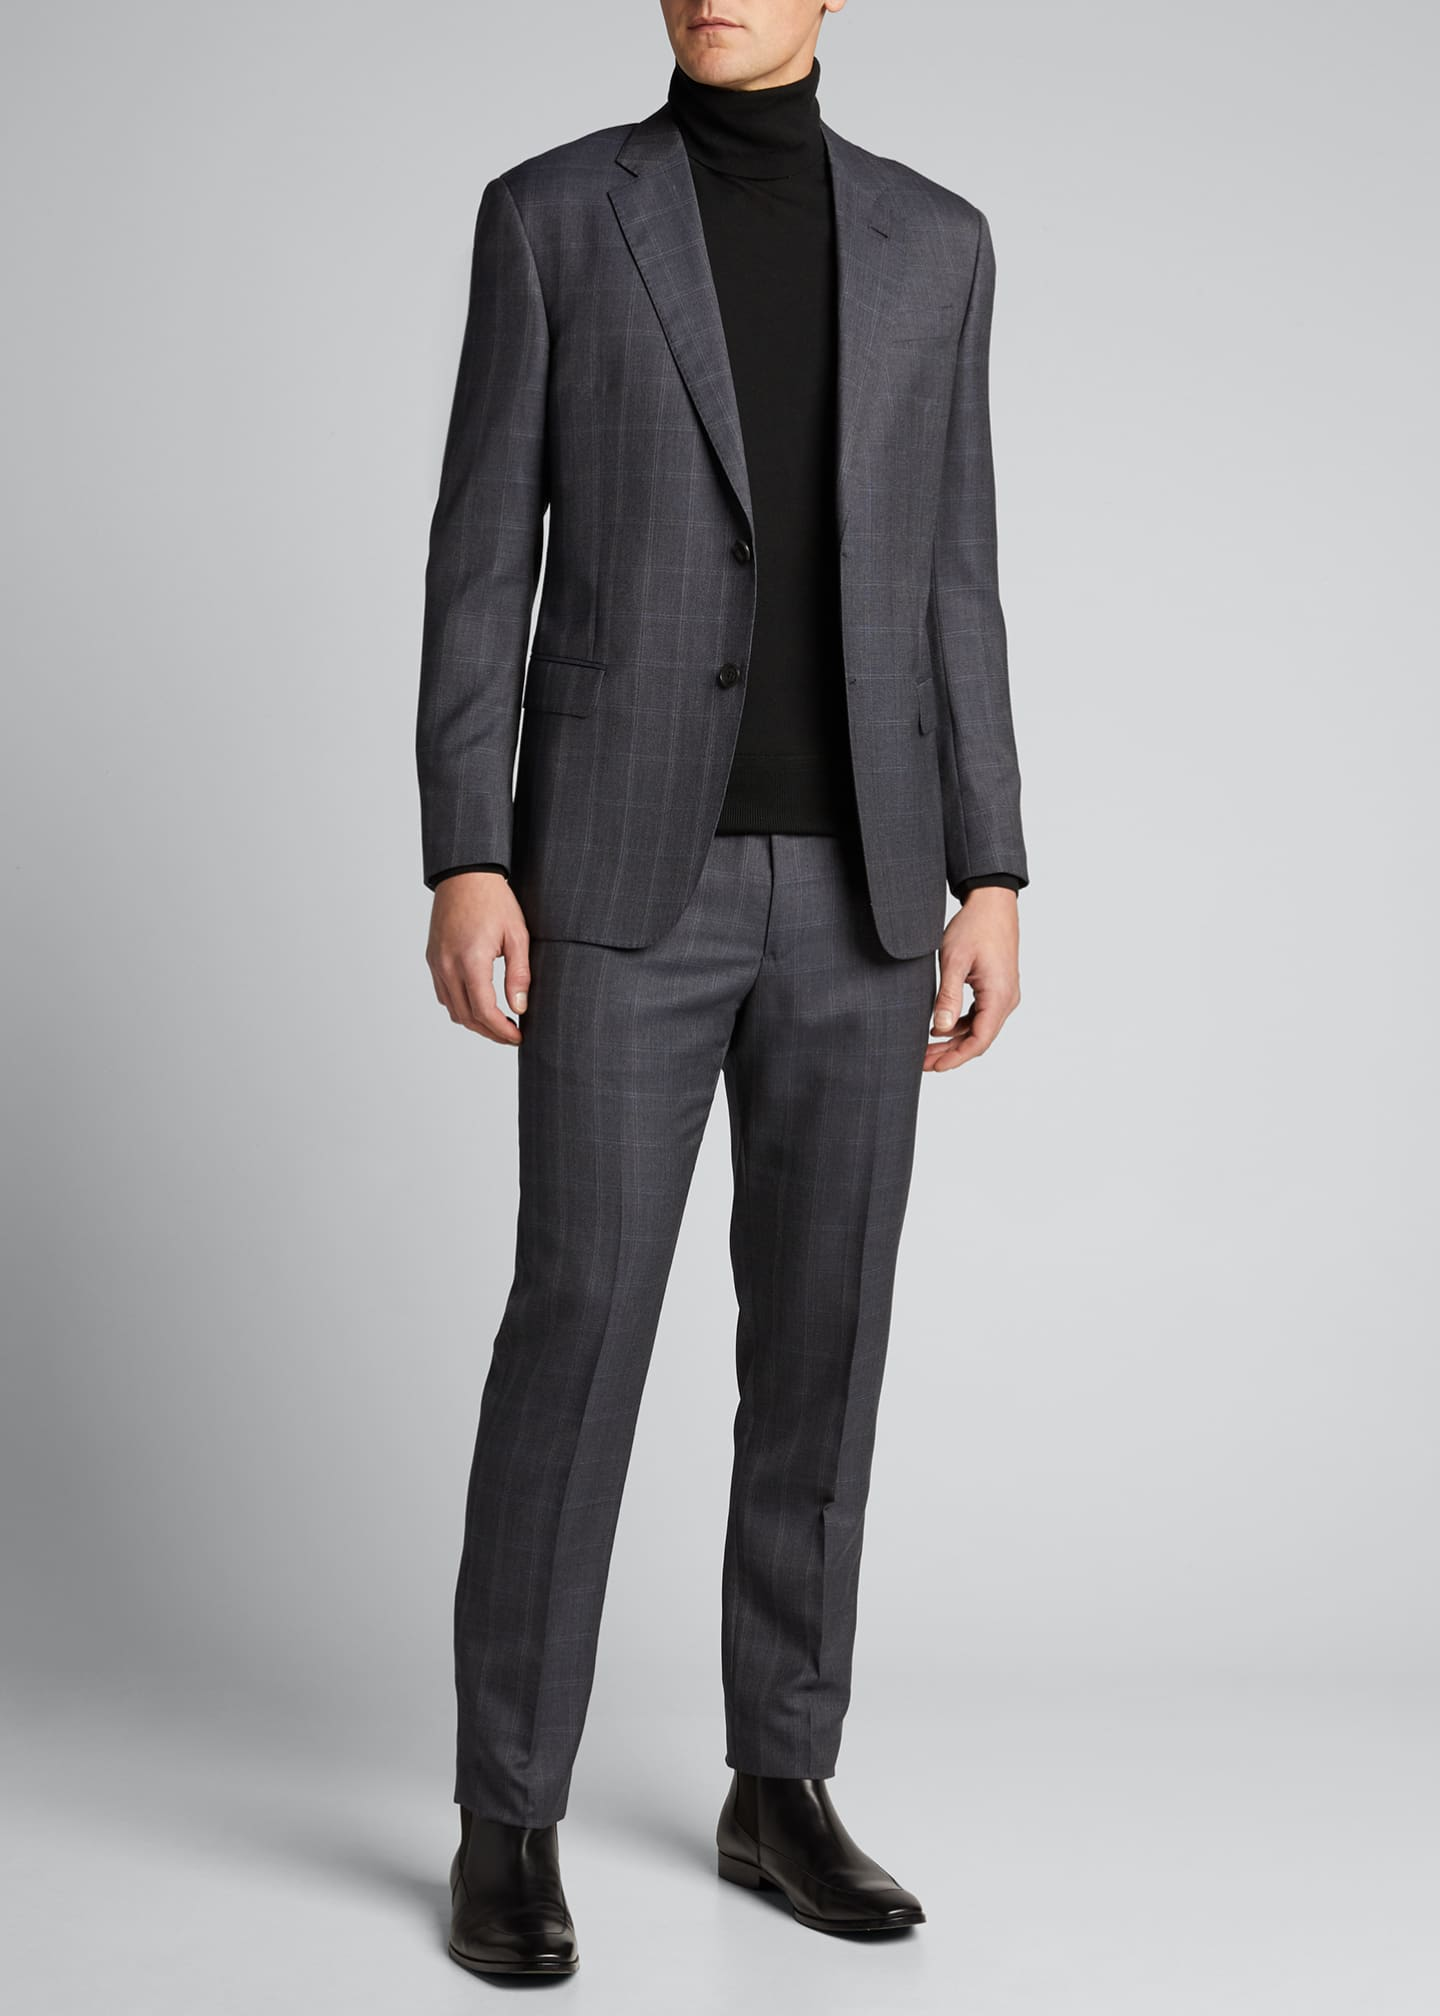 Image 1 of 5: Men's Windowpane Wool Two-Piece Suit